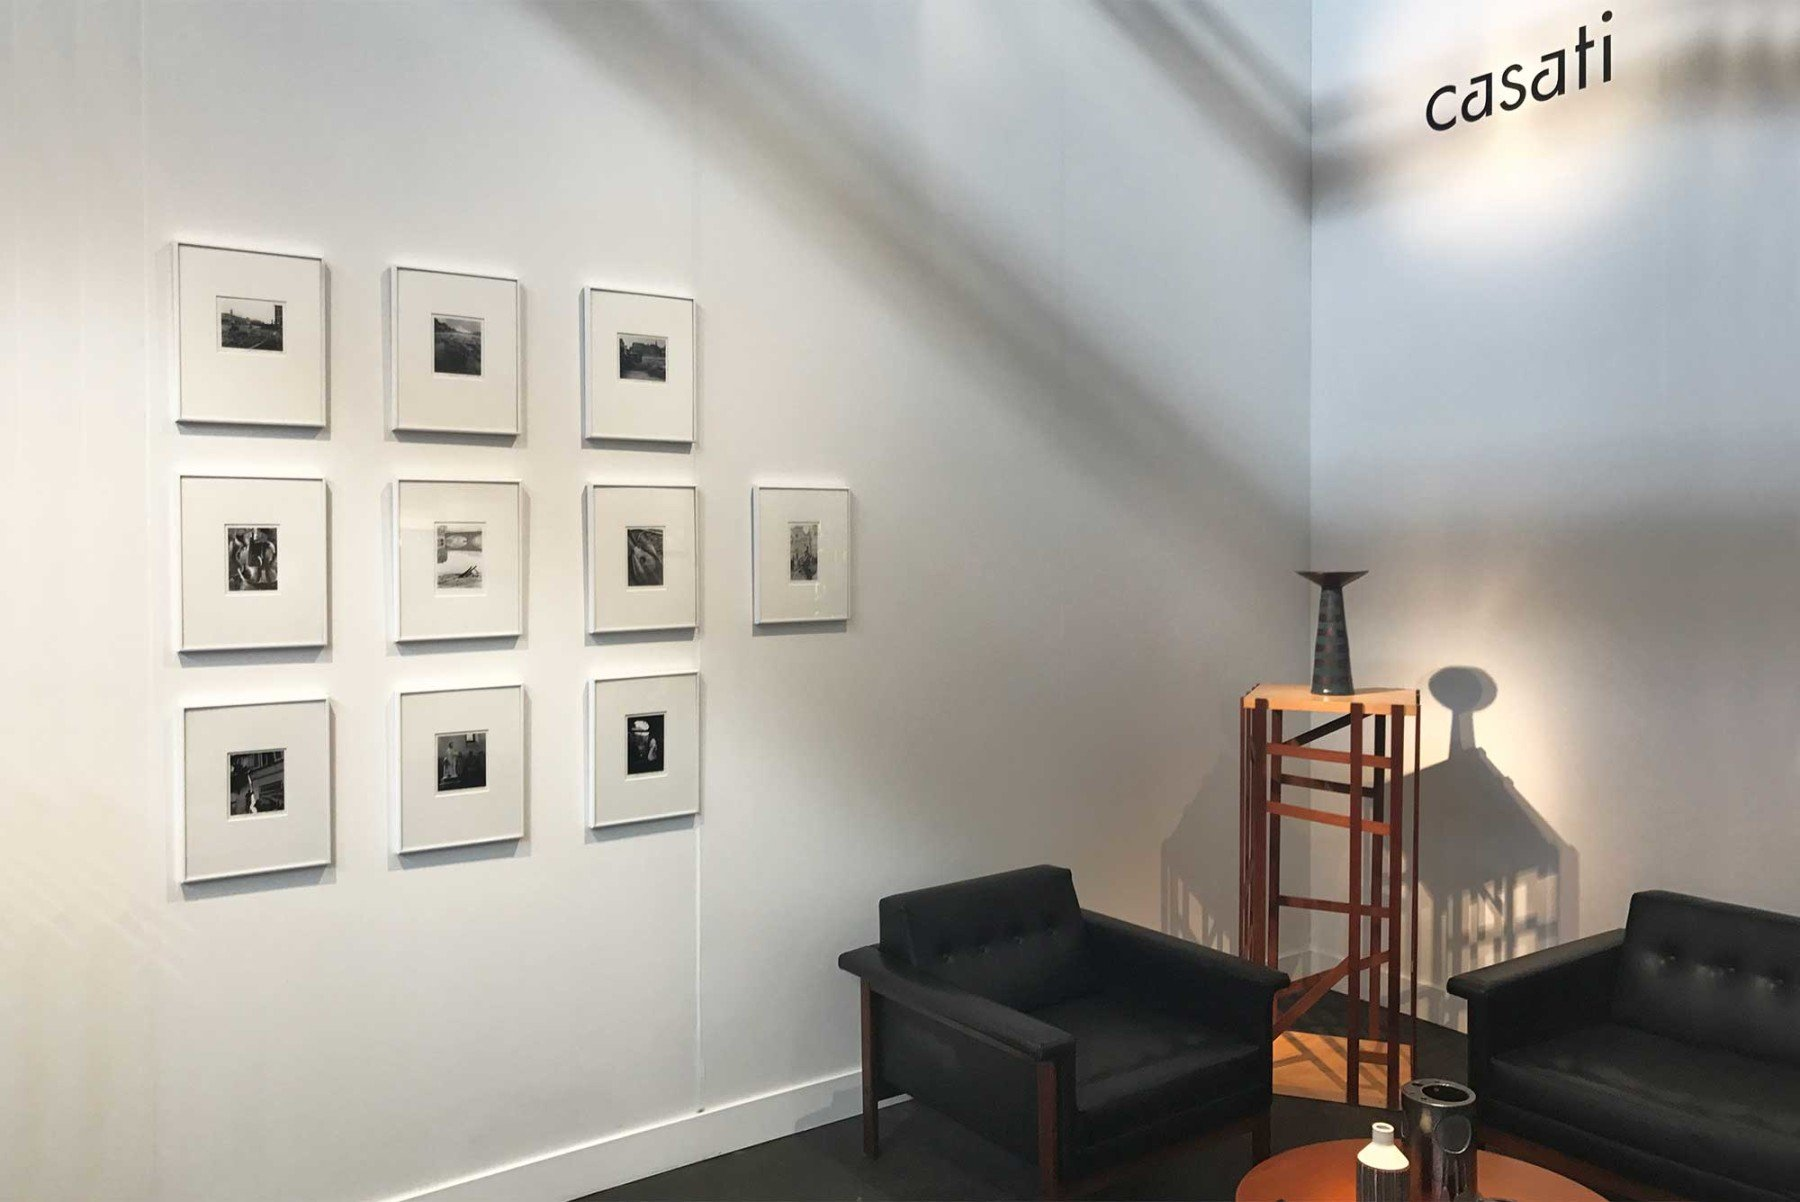 Set of ten vintage prints from the Florence Flood collection, made by Balthazar Korab. Showcased in Casati Gallery's booth at FOG Design + Art fair in San Francisco.